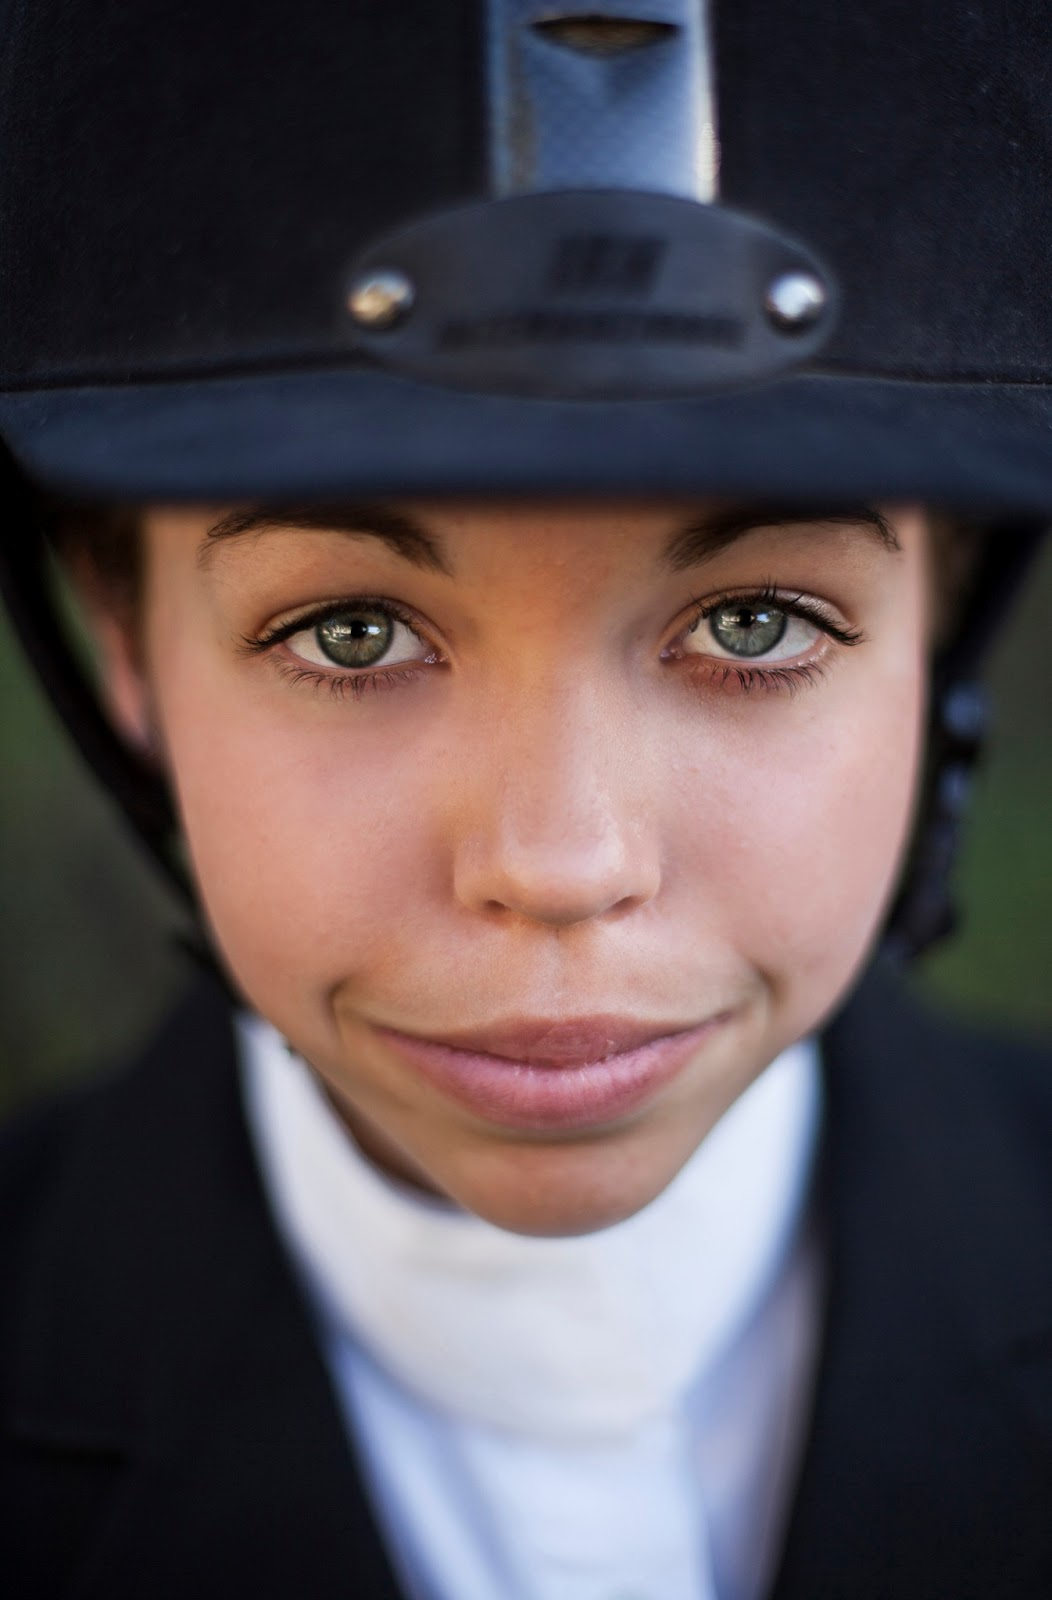 English Horseback Riding Competition Headshot in Ventura County, CA